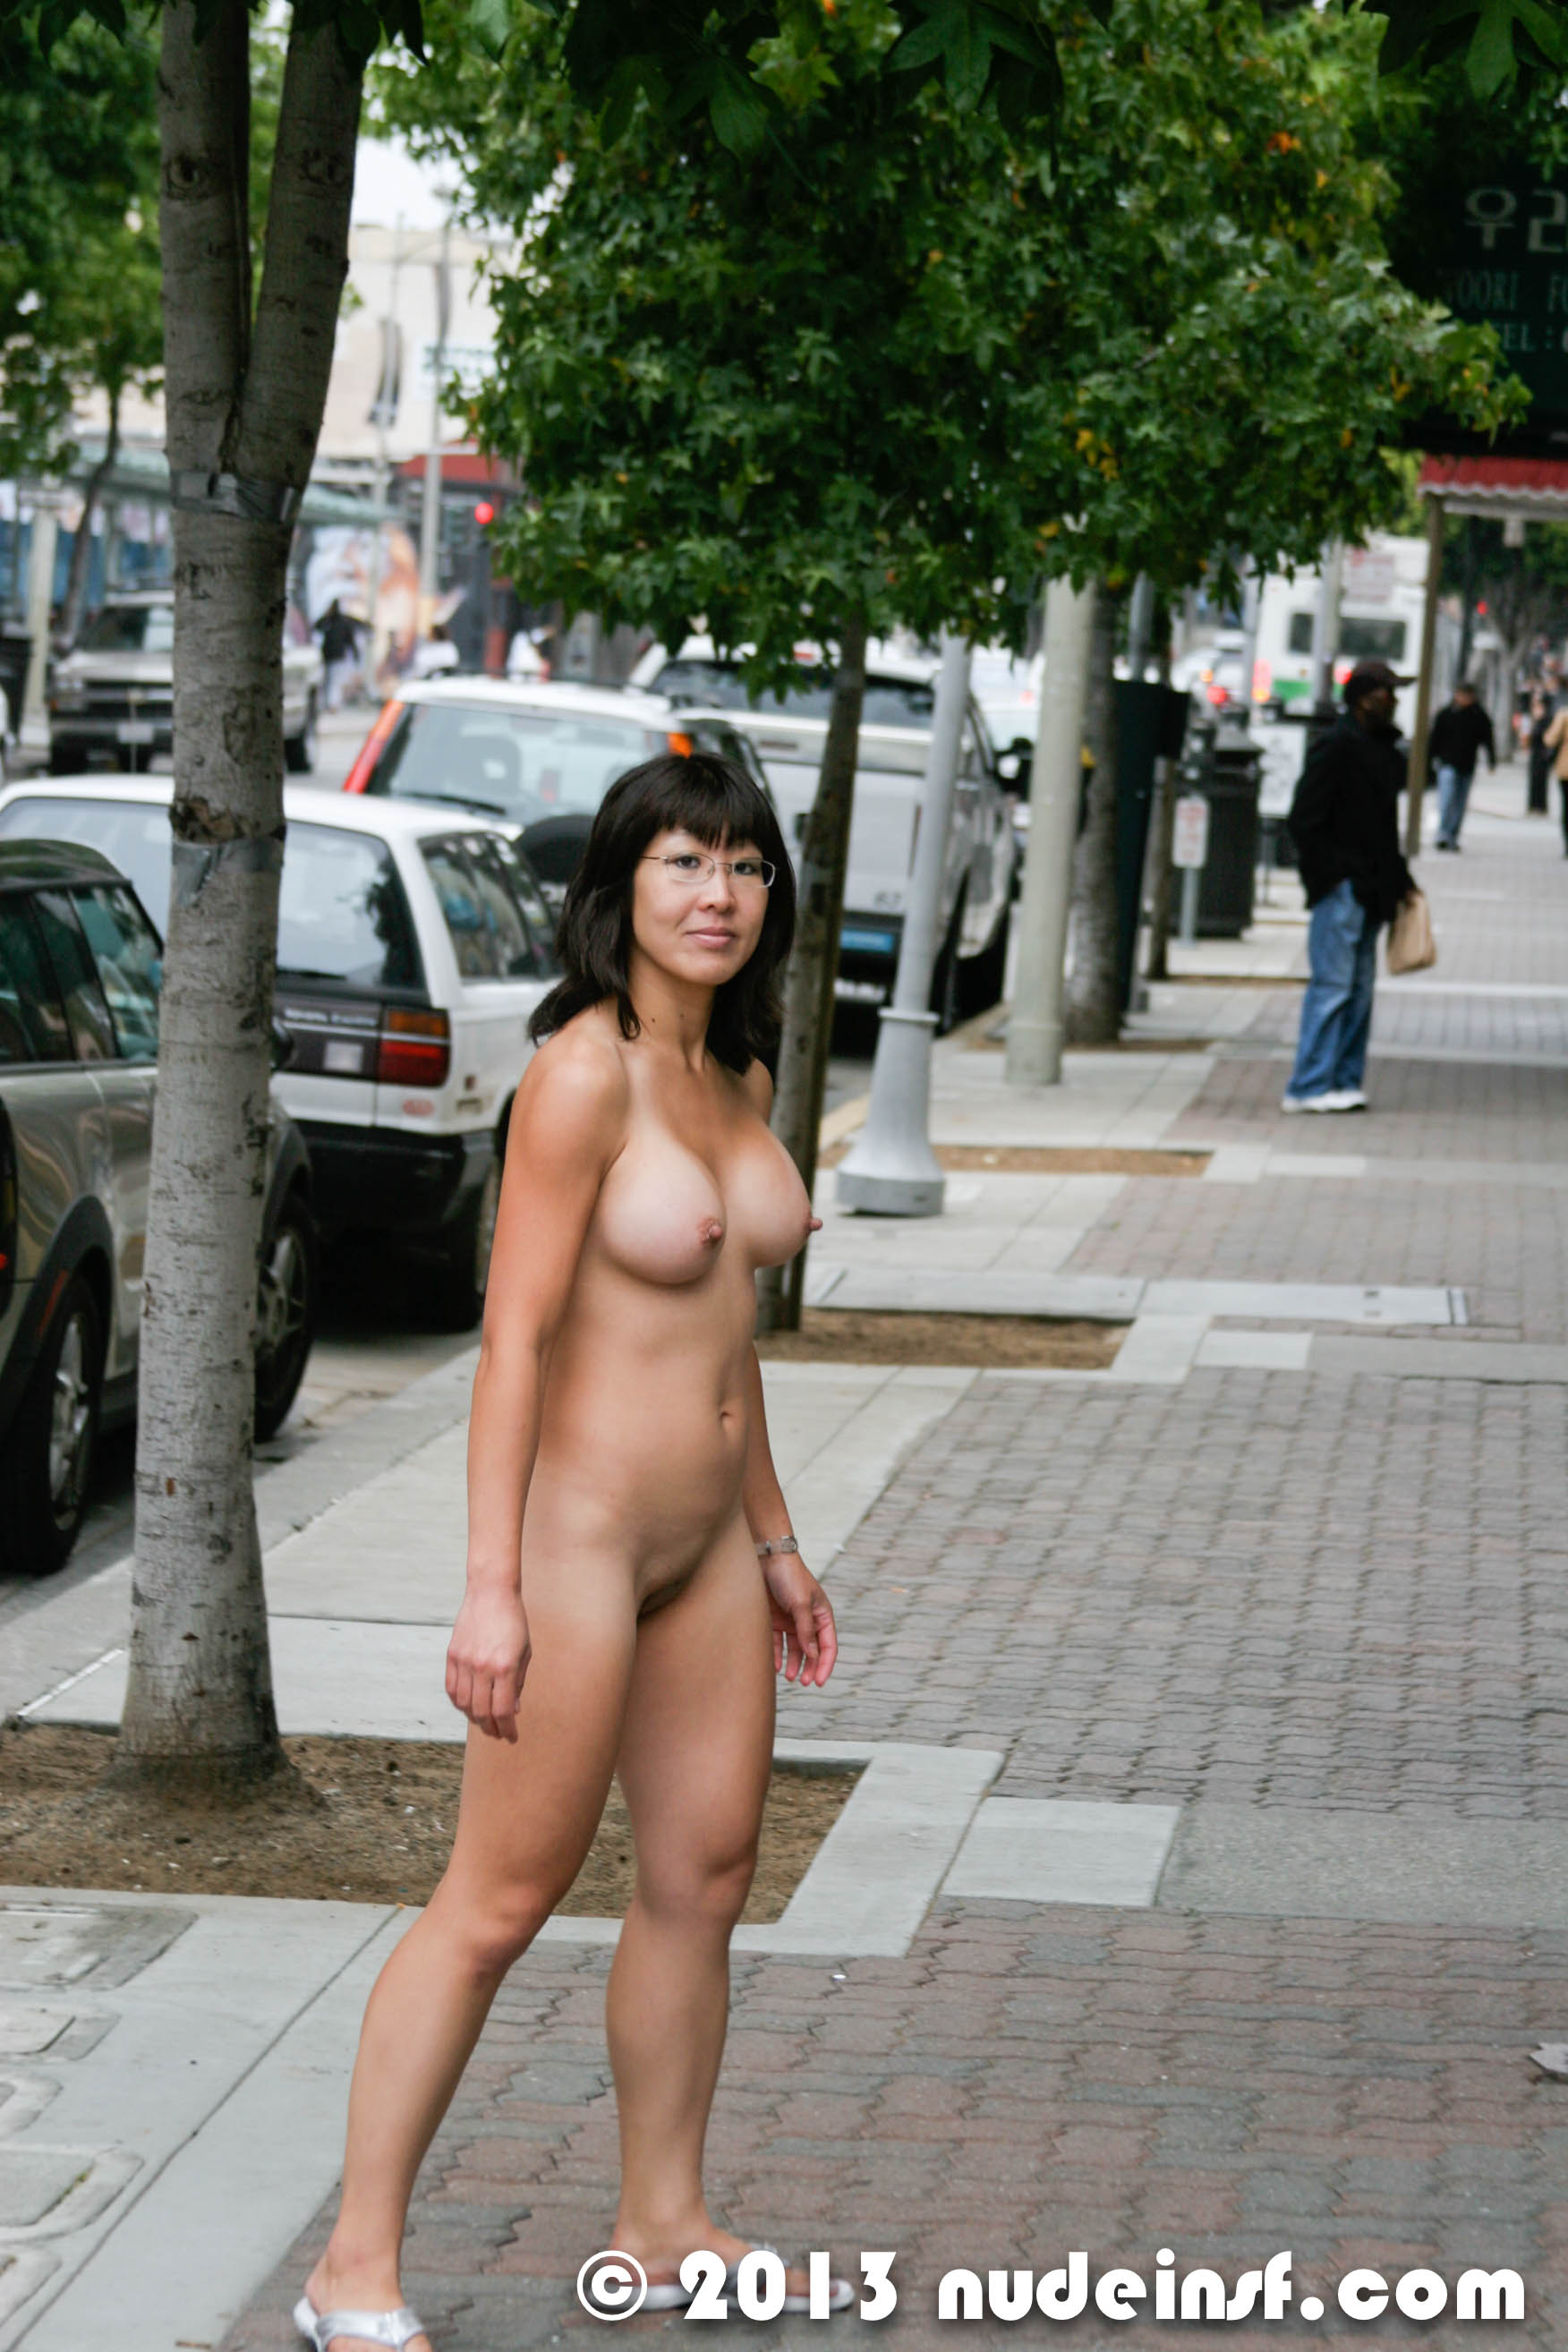 Think, Free nude walk in public pic